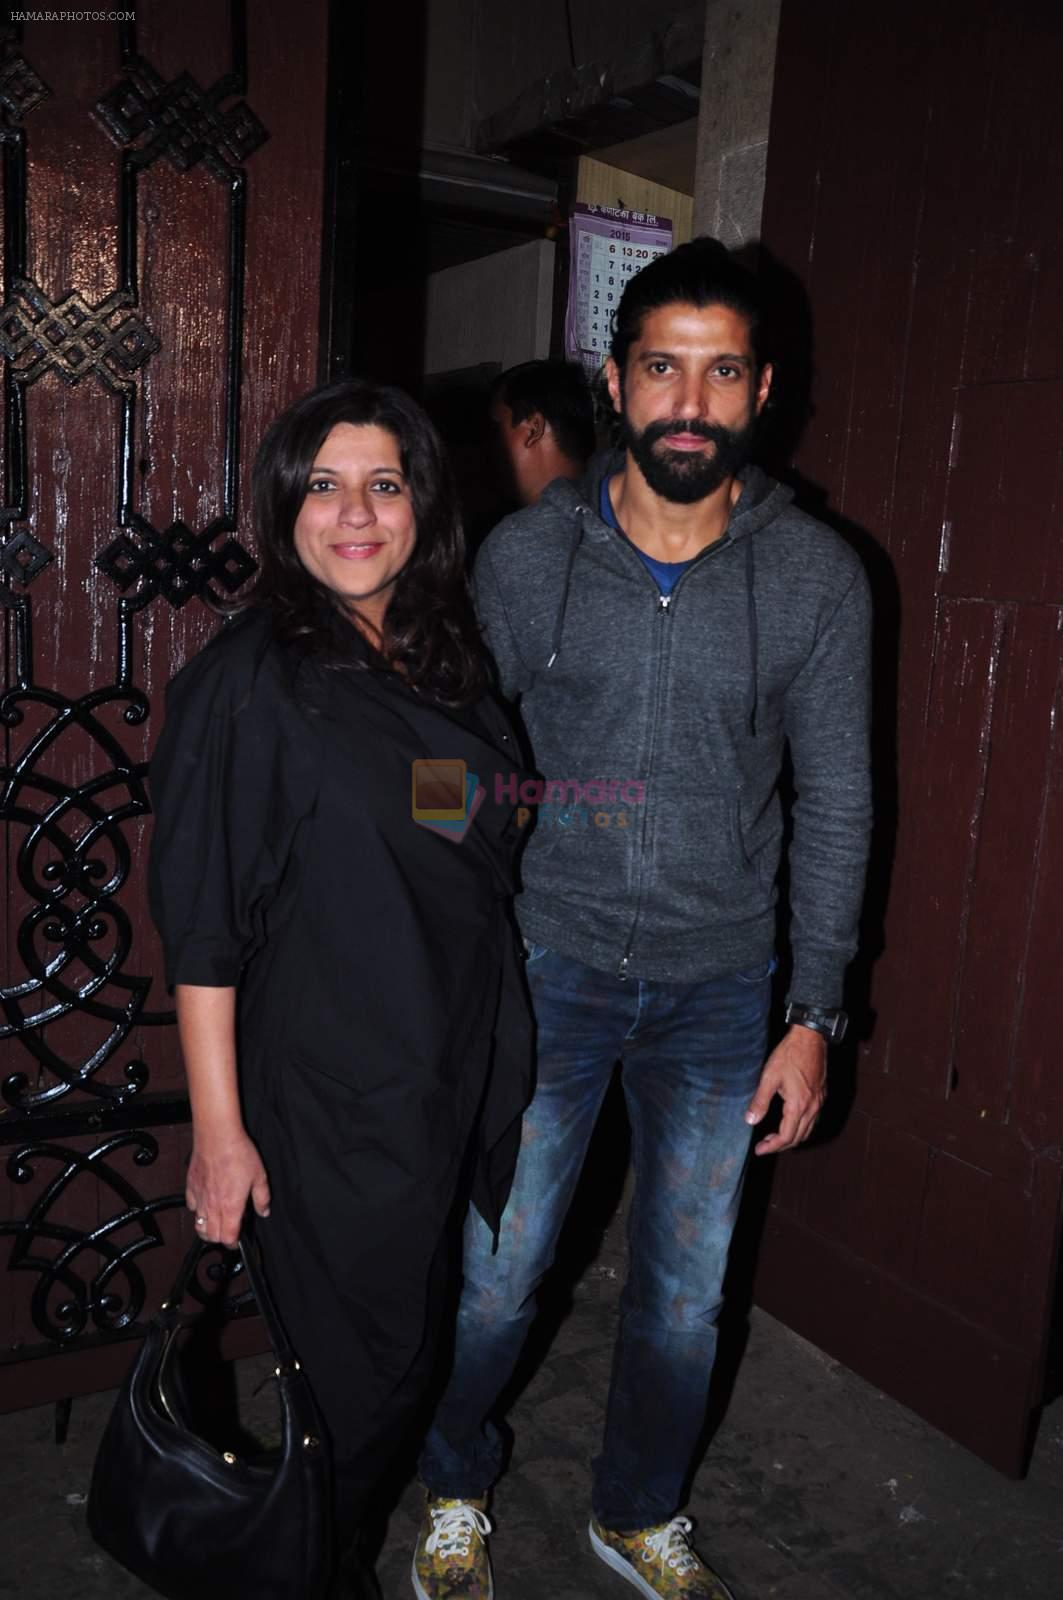 Farhan Akhtar, Zoya Akhtar at Anil kapoor's bday bash on 23rd Dec 2015